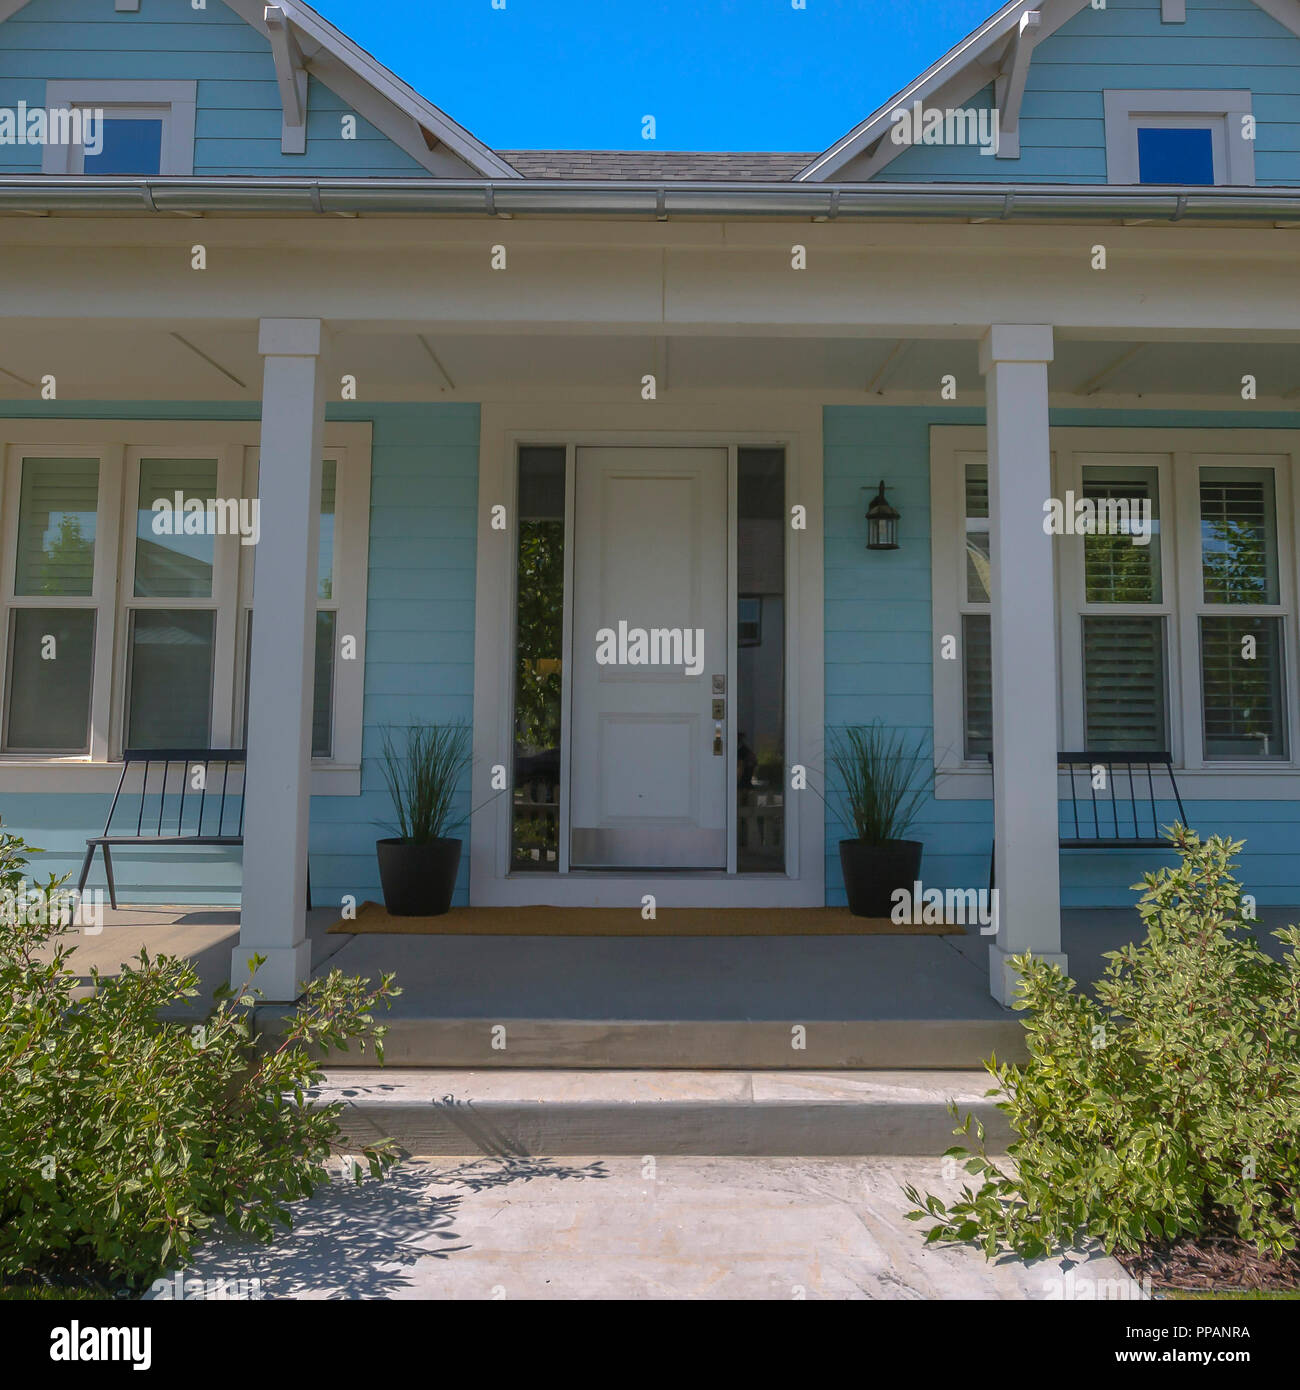 Facade of a home with white front door and columns - Stock Image